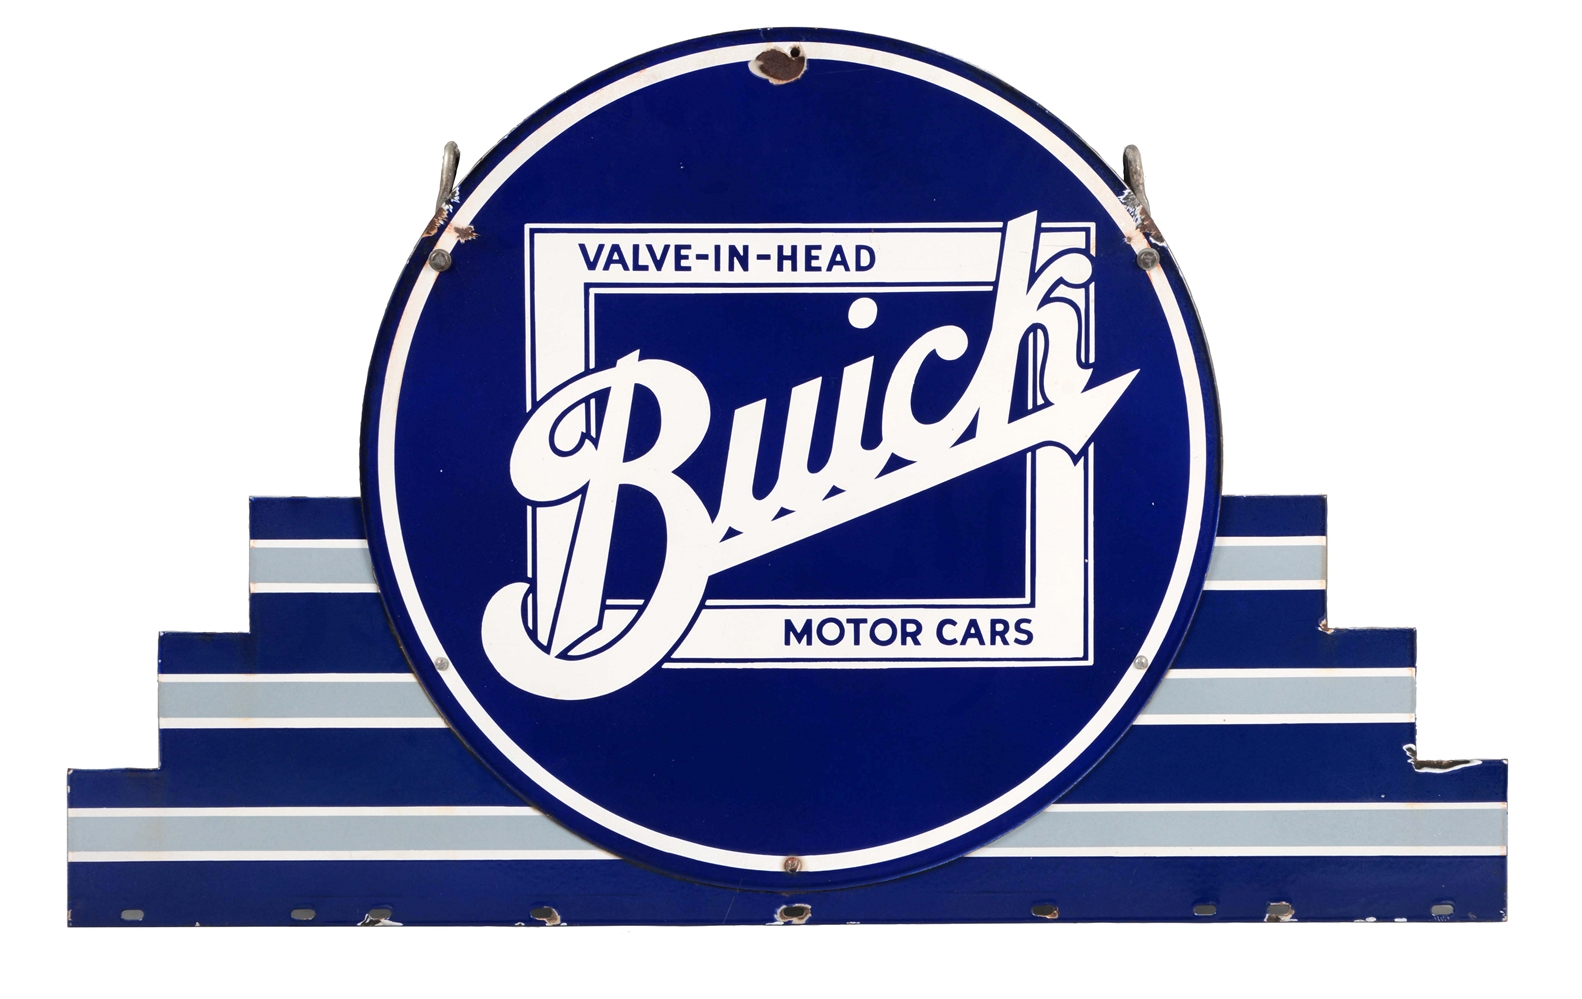 Buick Valve In Head Motor Cars Porcelain Sign with Porcelain Marquee.